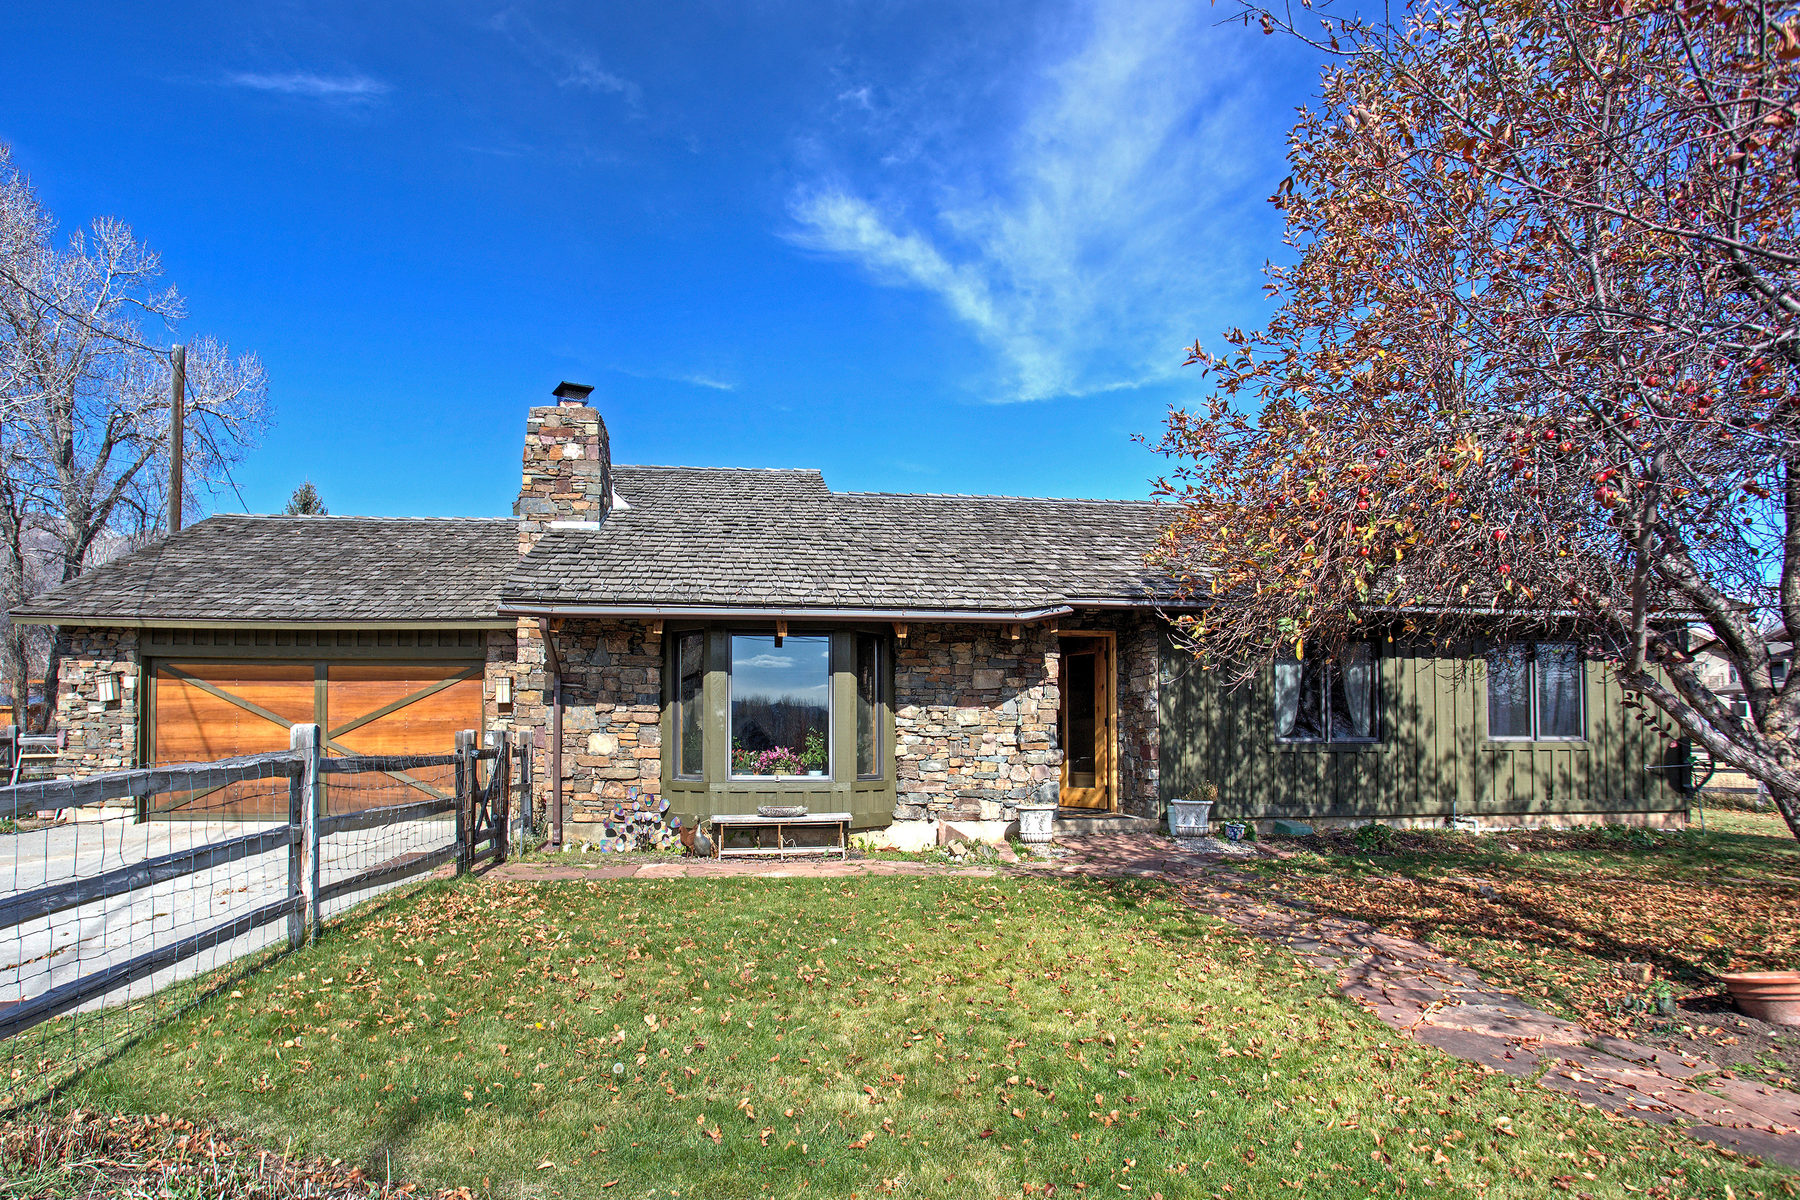 Single Family Home for Sale at Charming Midway Home 540 W Cari Ln Midway, Utah, 84049 United States